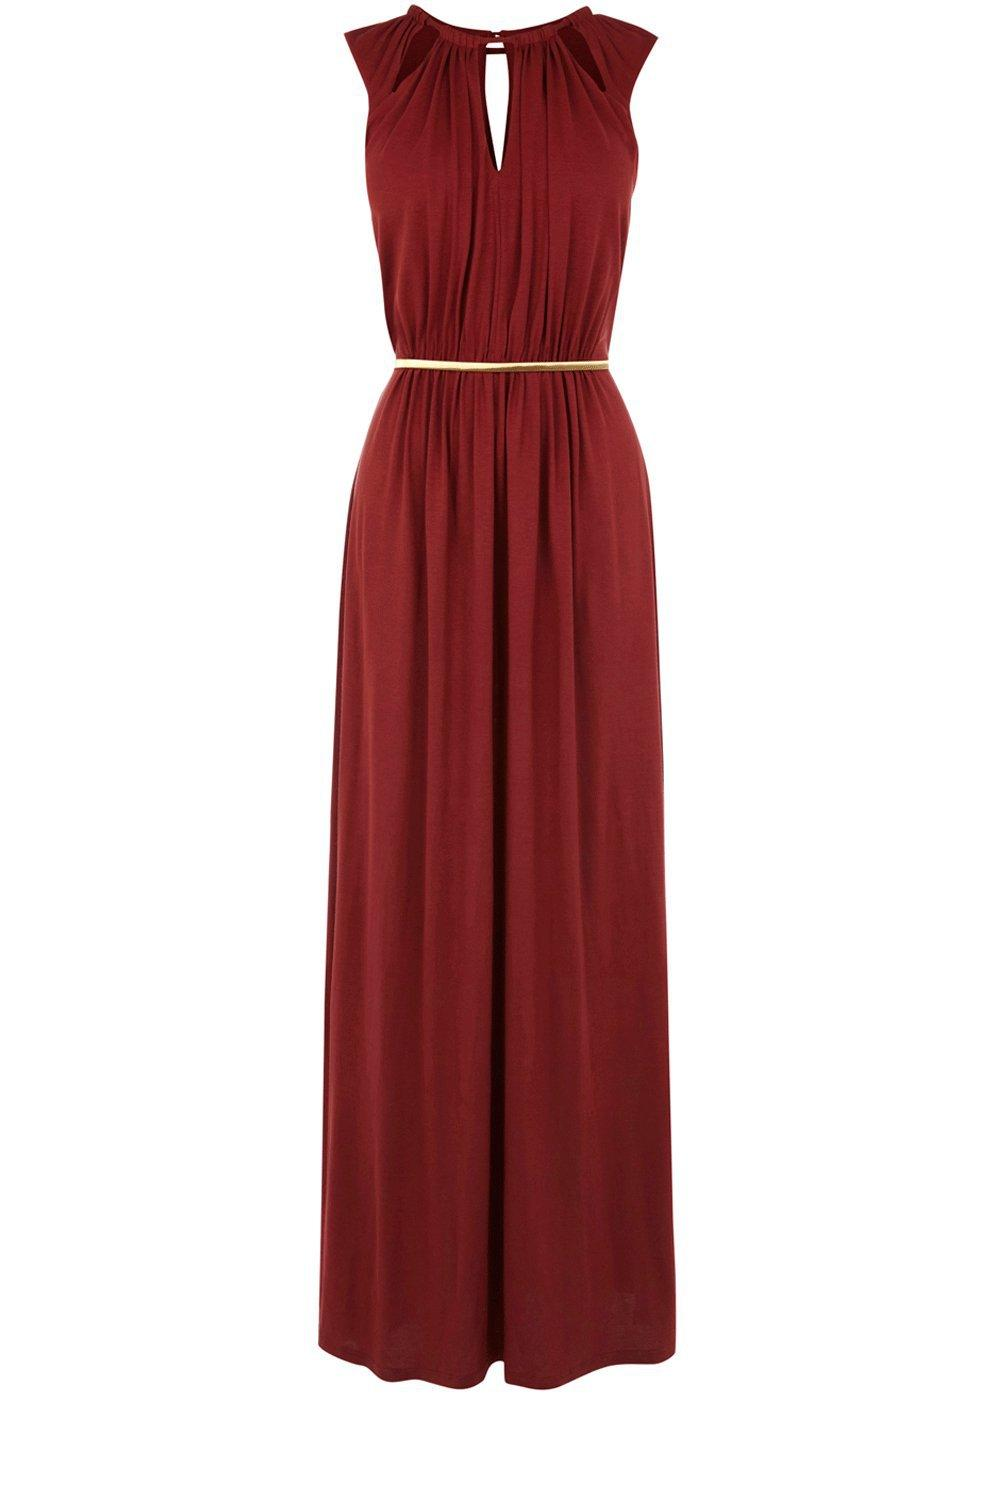 Oasis Shop Burnt Orange Luxe Maxi Dress From Oasis Clothing